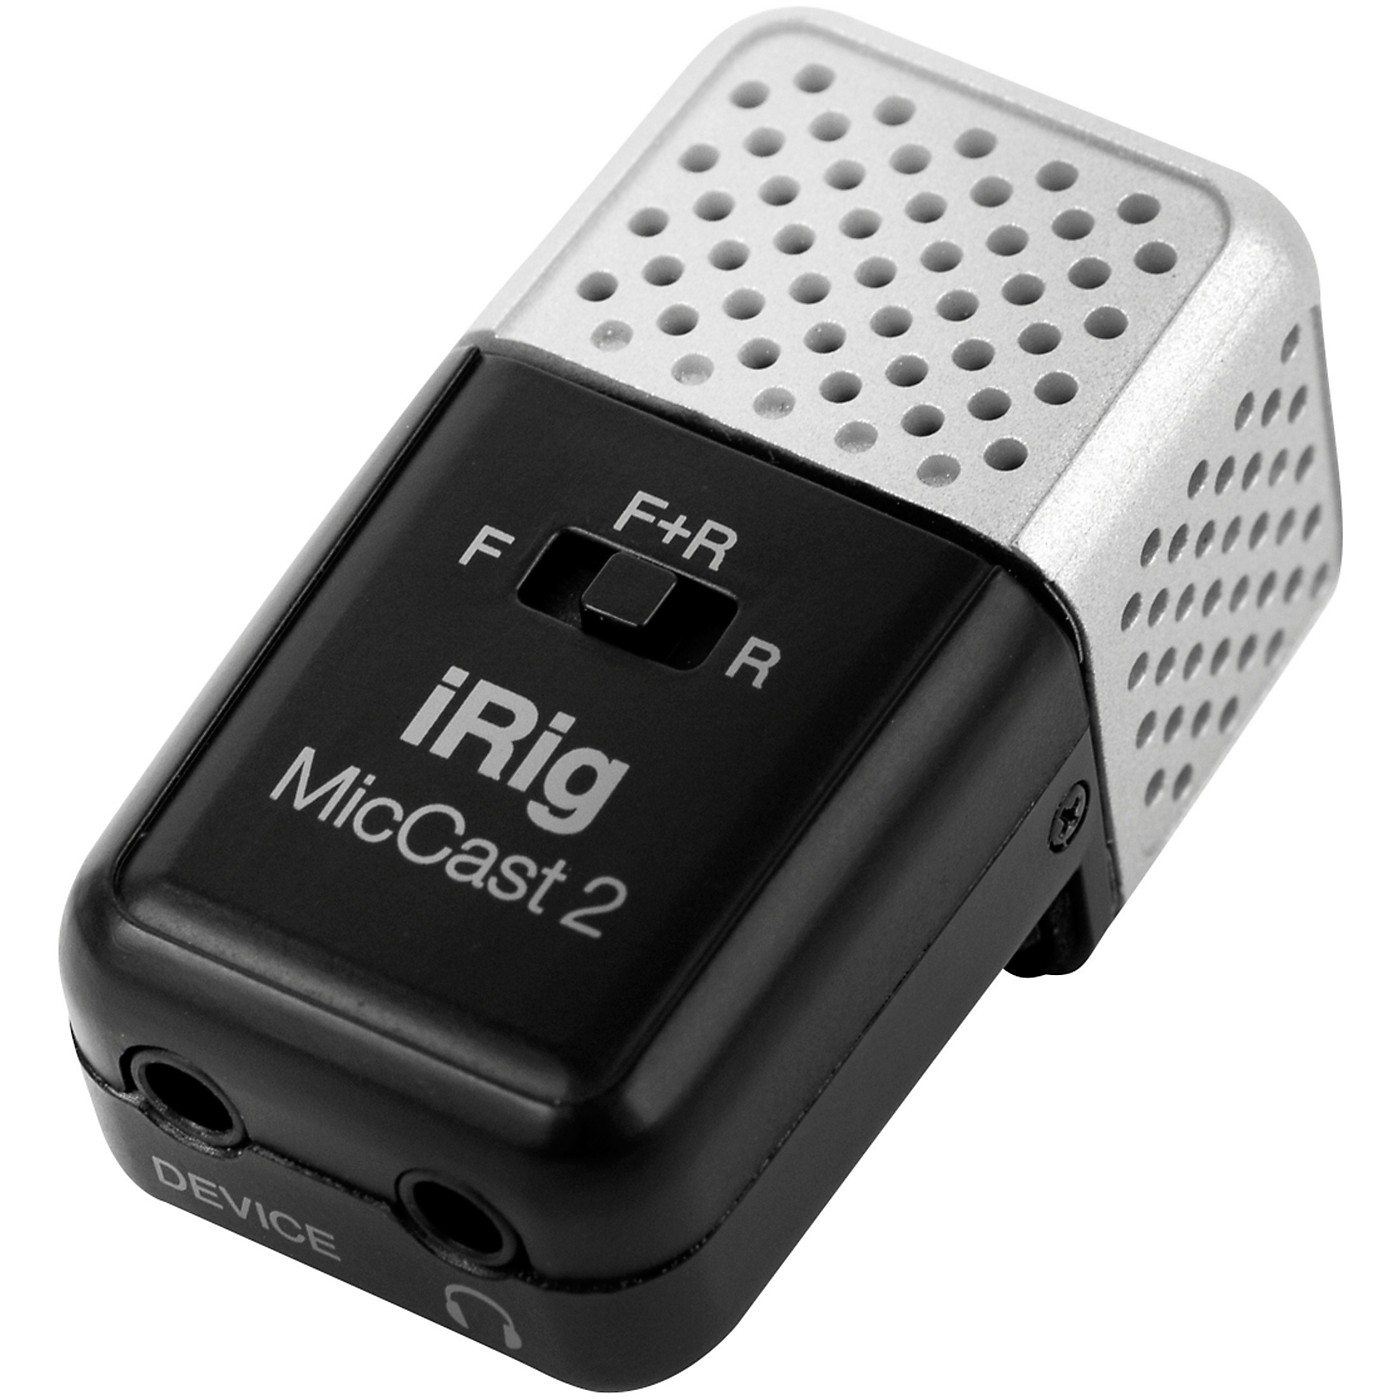 IK Multimedia iRig Mic Cast 2 for iOS, Mac and Select Android Devices thumbnail